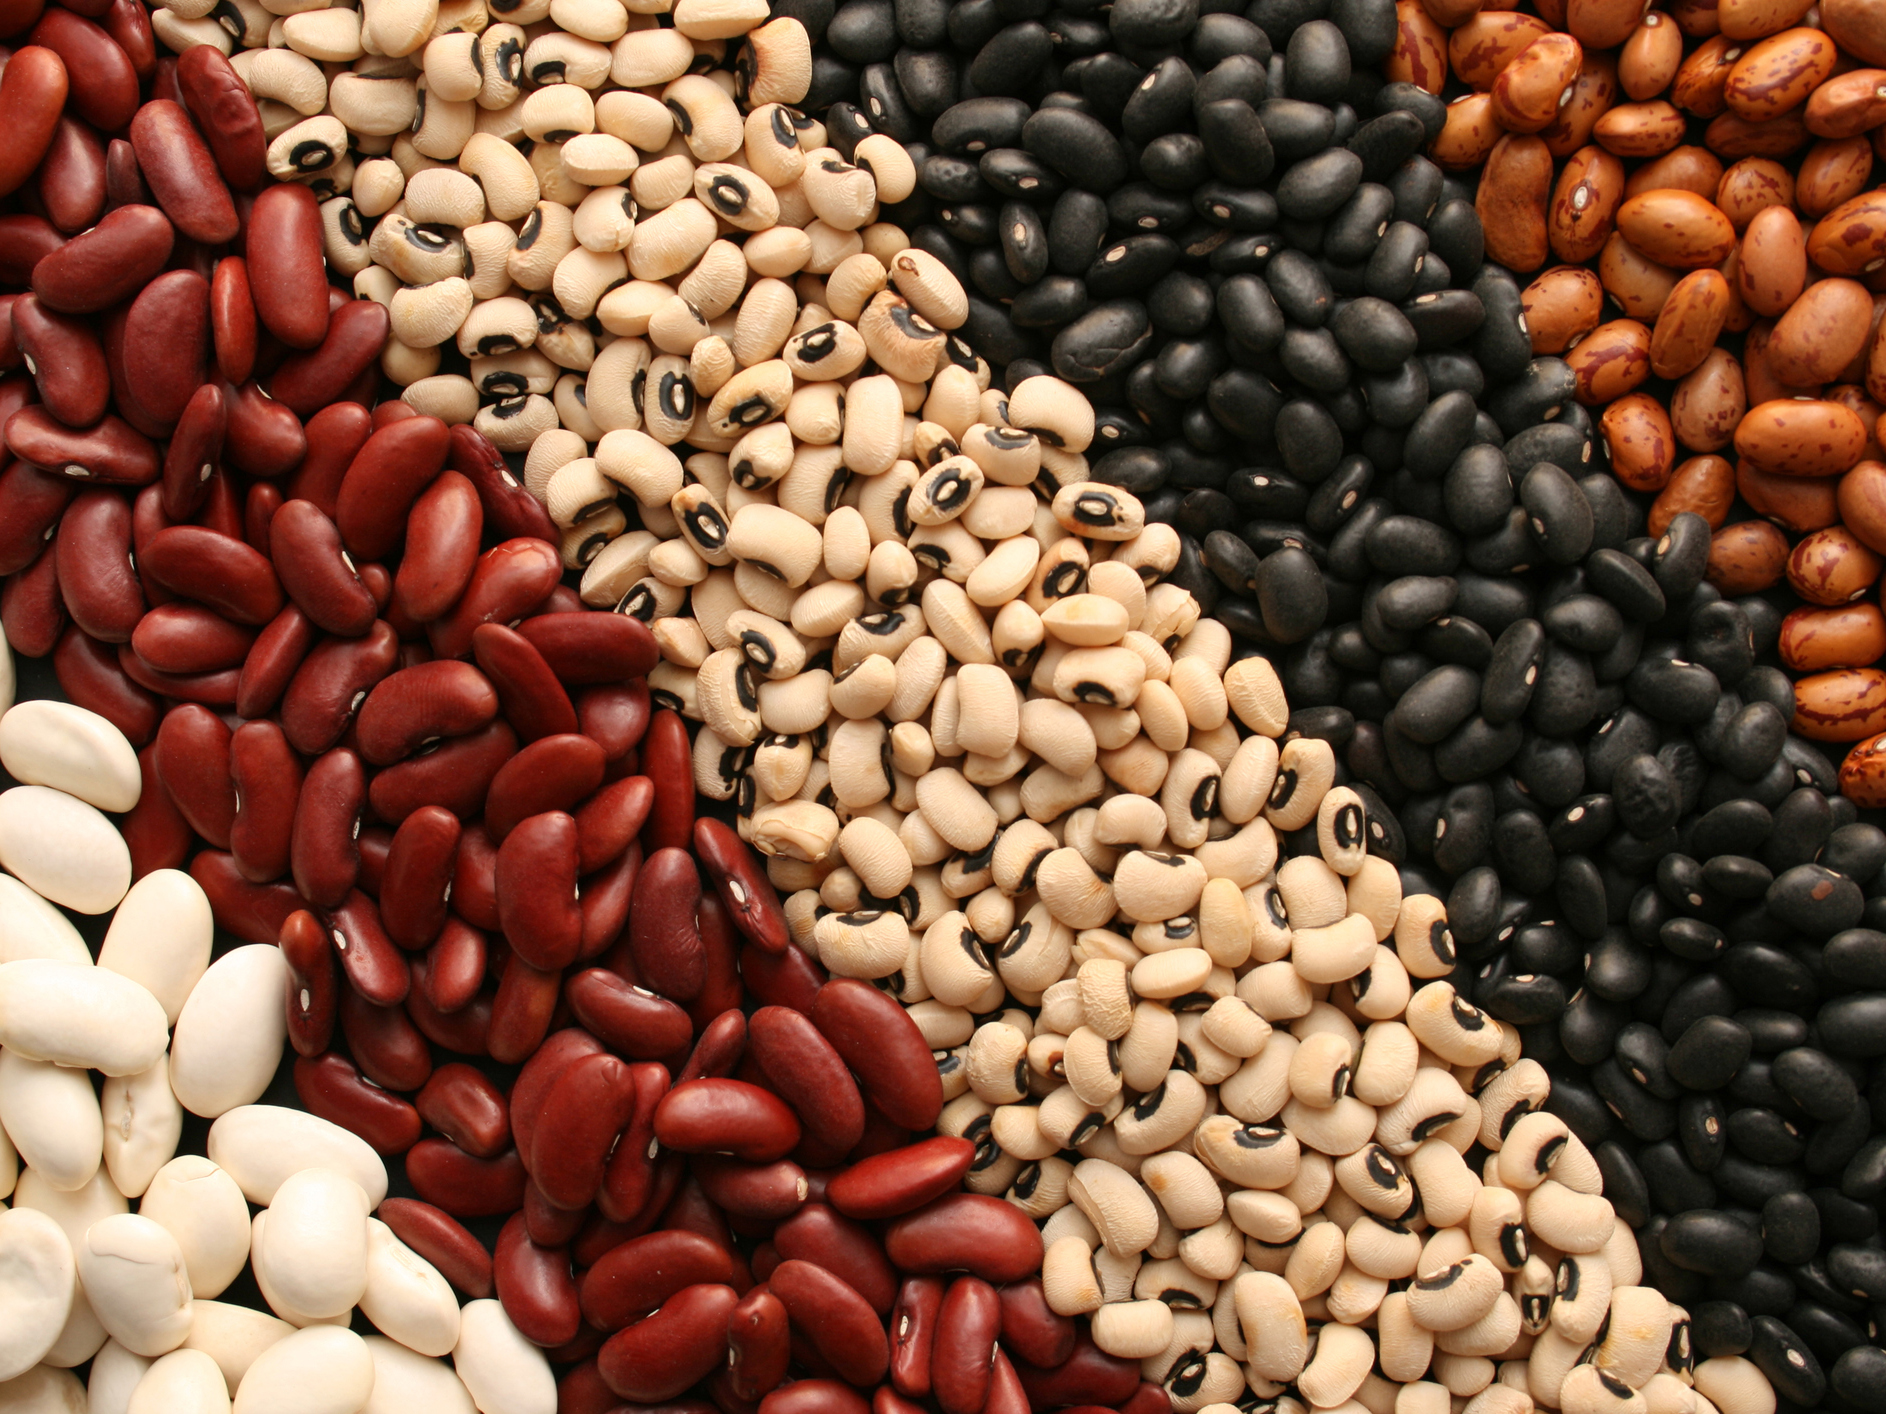 NEPC Trains Dried Beans Farmers On Export Guidelines